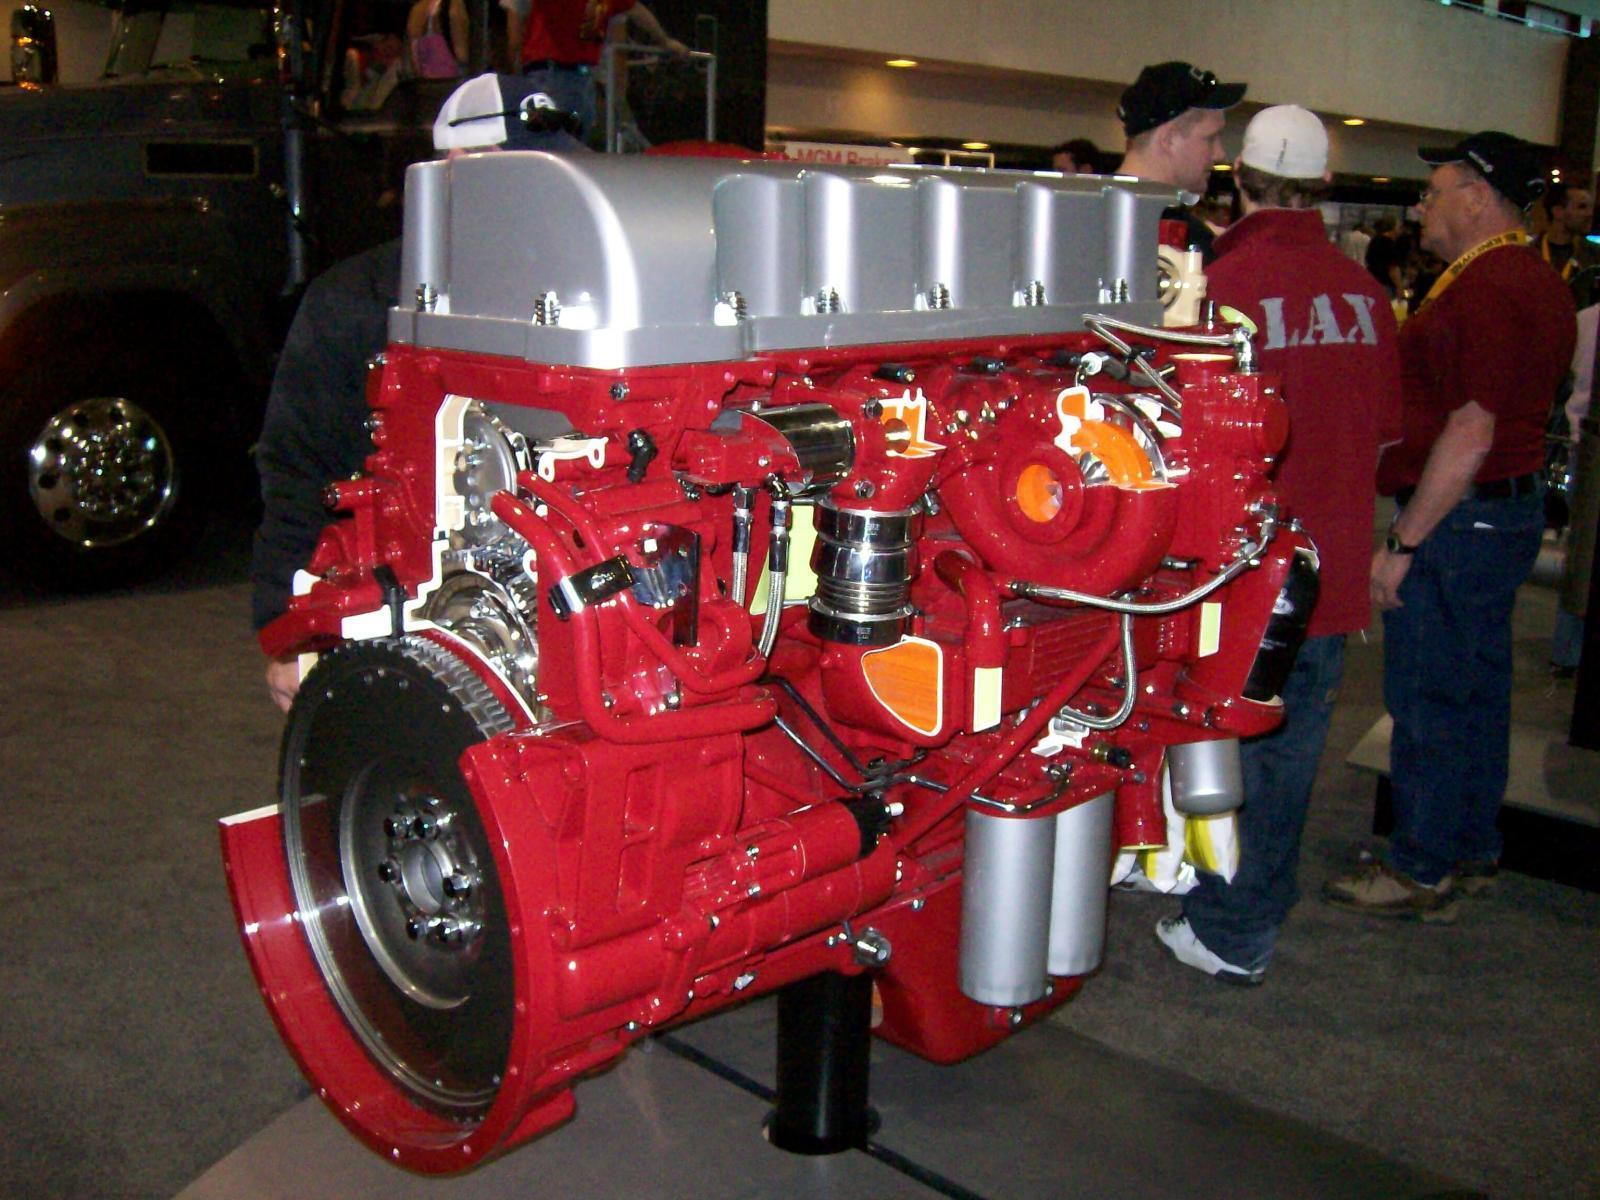 mp10 rear jpg - BMT Member's Gallery - Click here to view